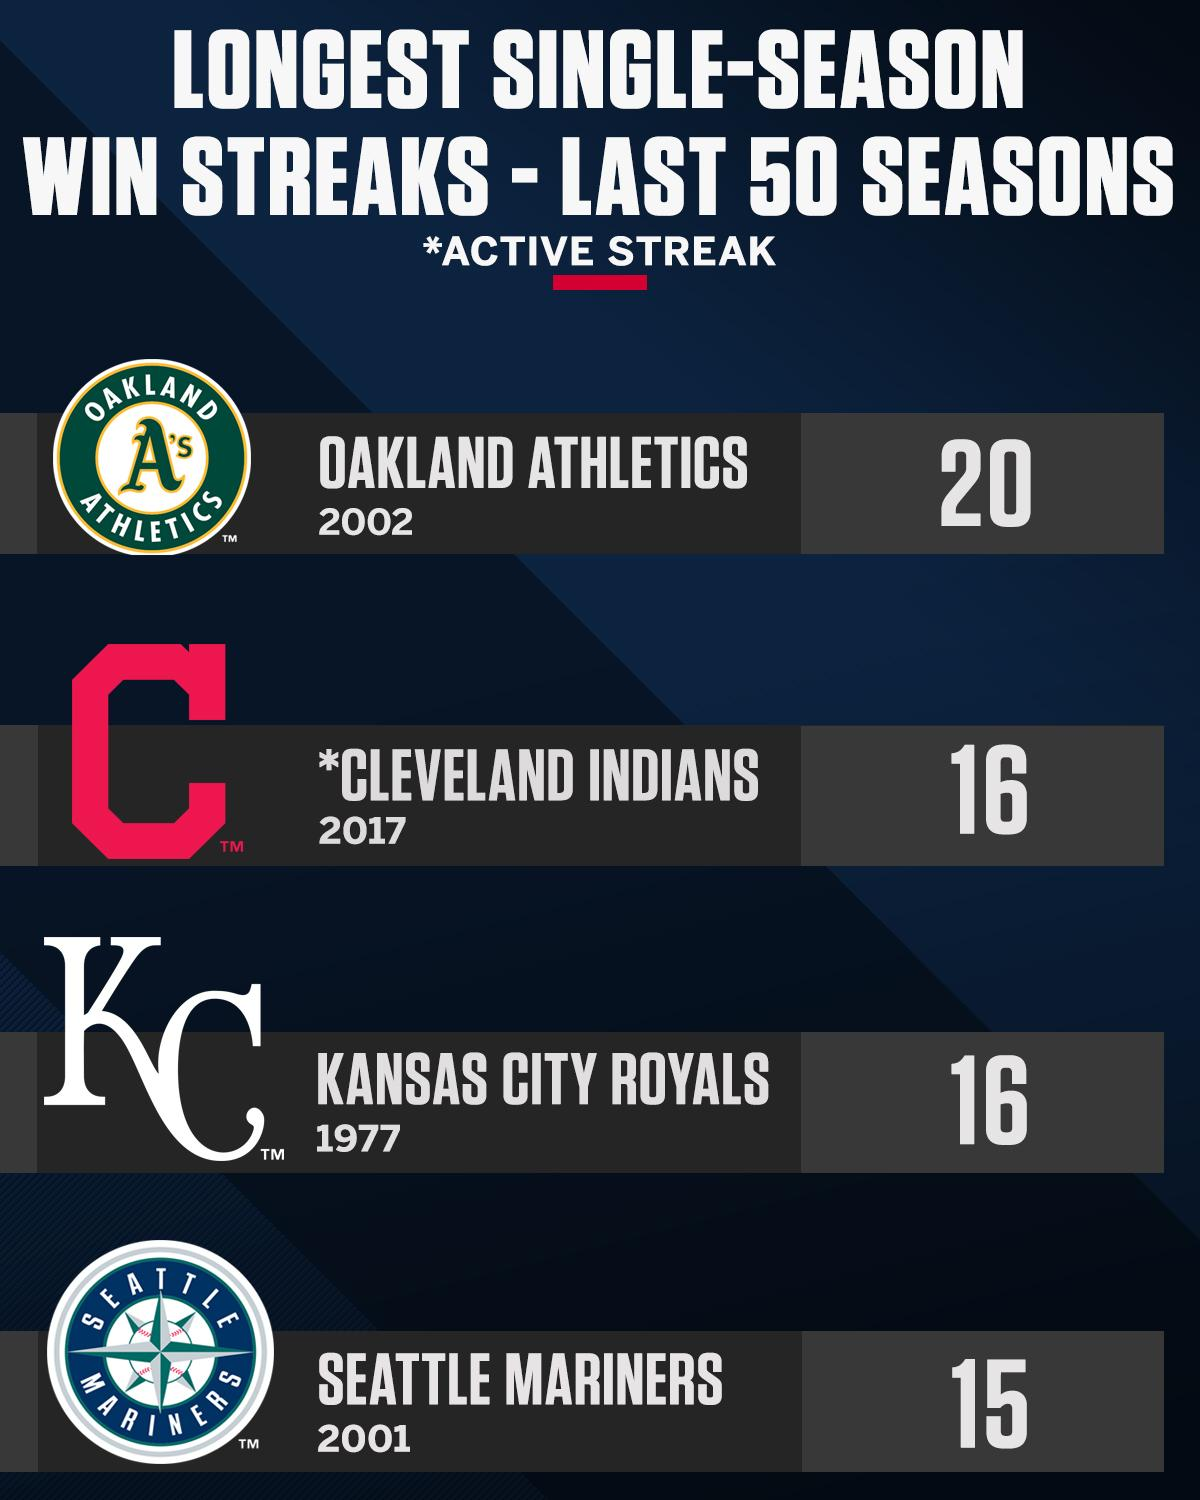 Cleveland wins again! Indians become the 3rd team in the last 50 seasons to win 16+ in a single season. https://t.co/XxgWAh5bS7